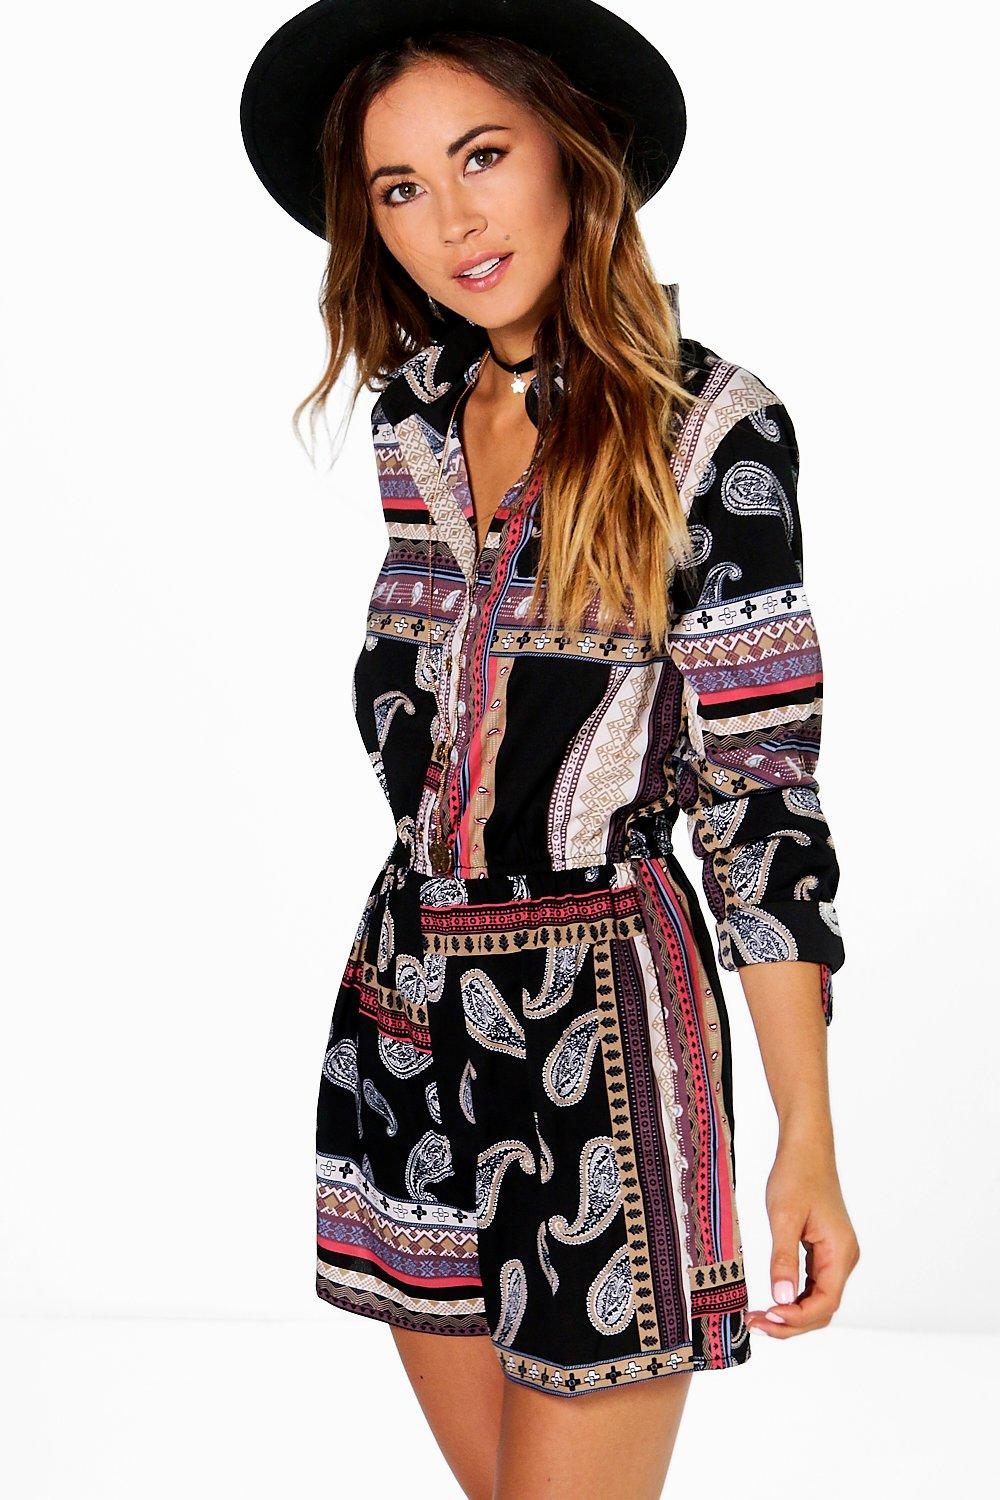 Polly Paisley Print Shirt Style Playsuit